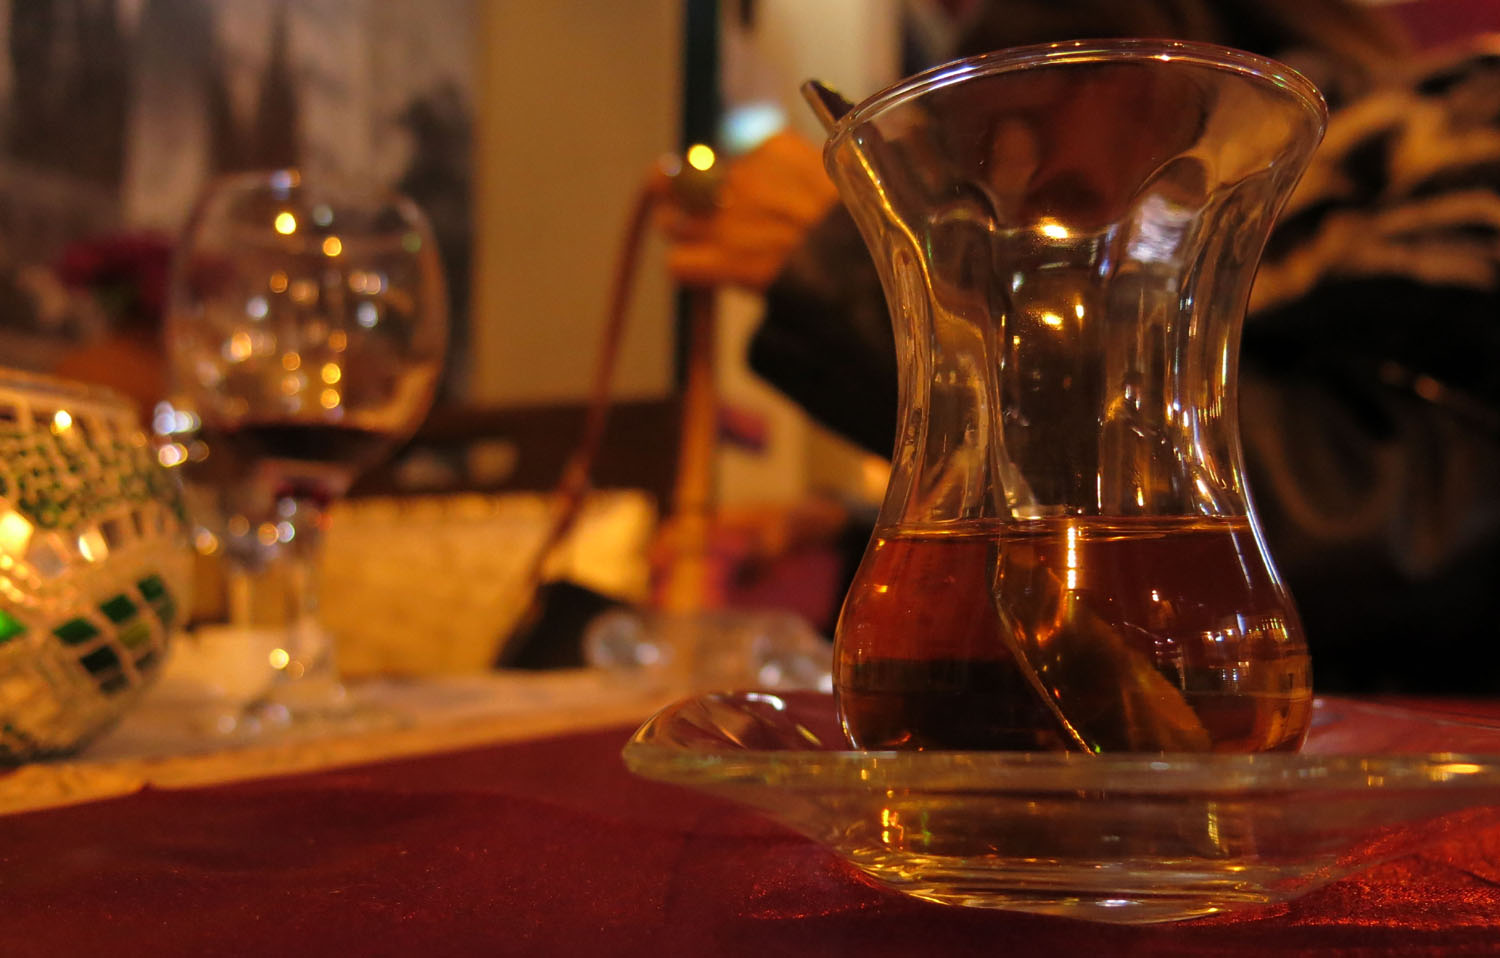 Turkey-Istanbul-Food-And-Drink-Tea